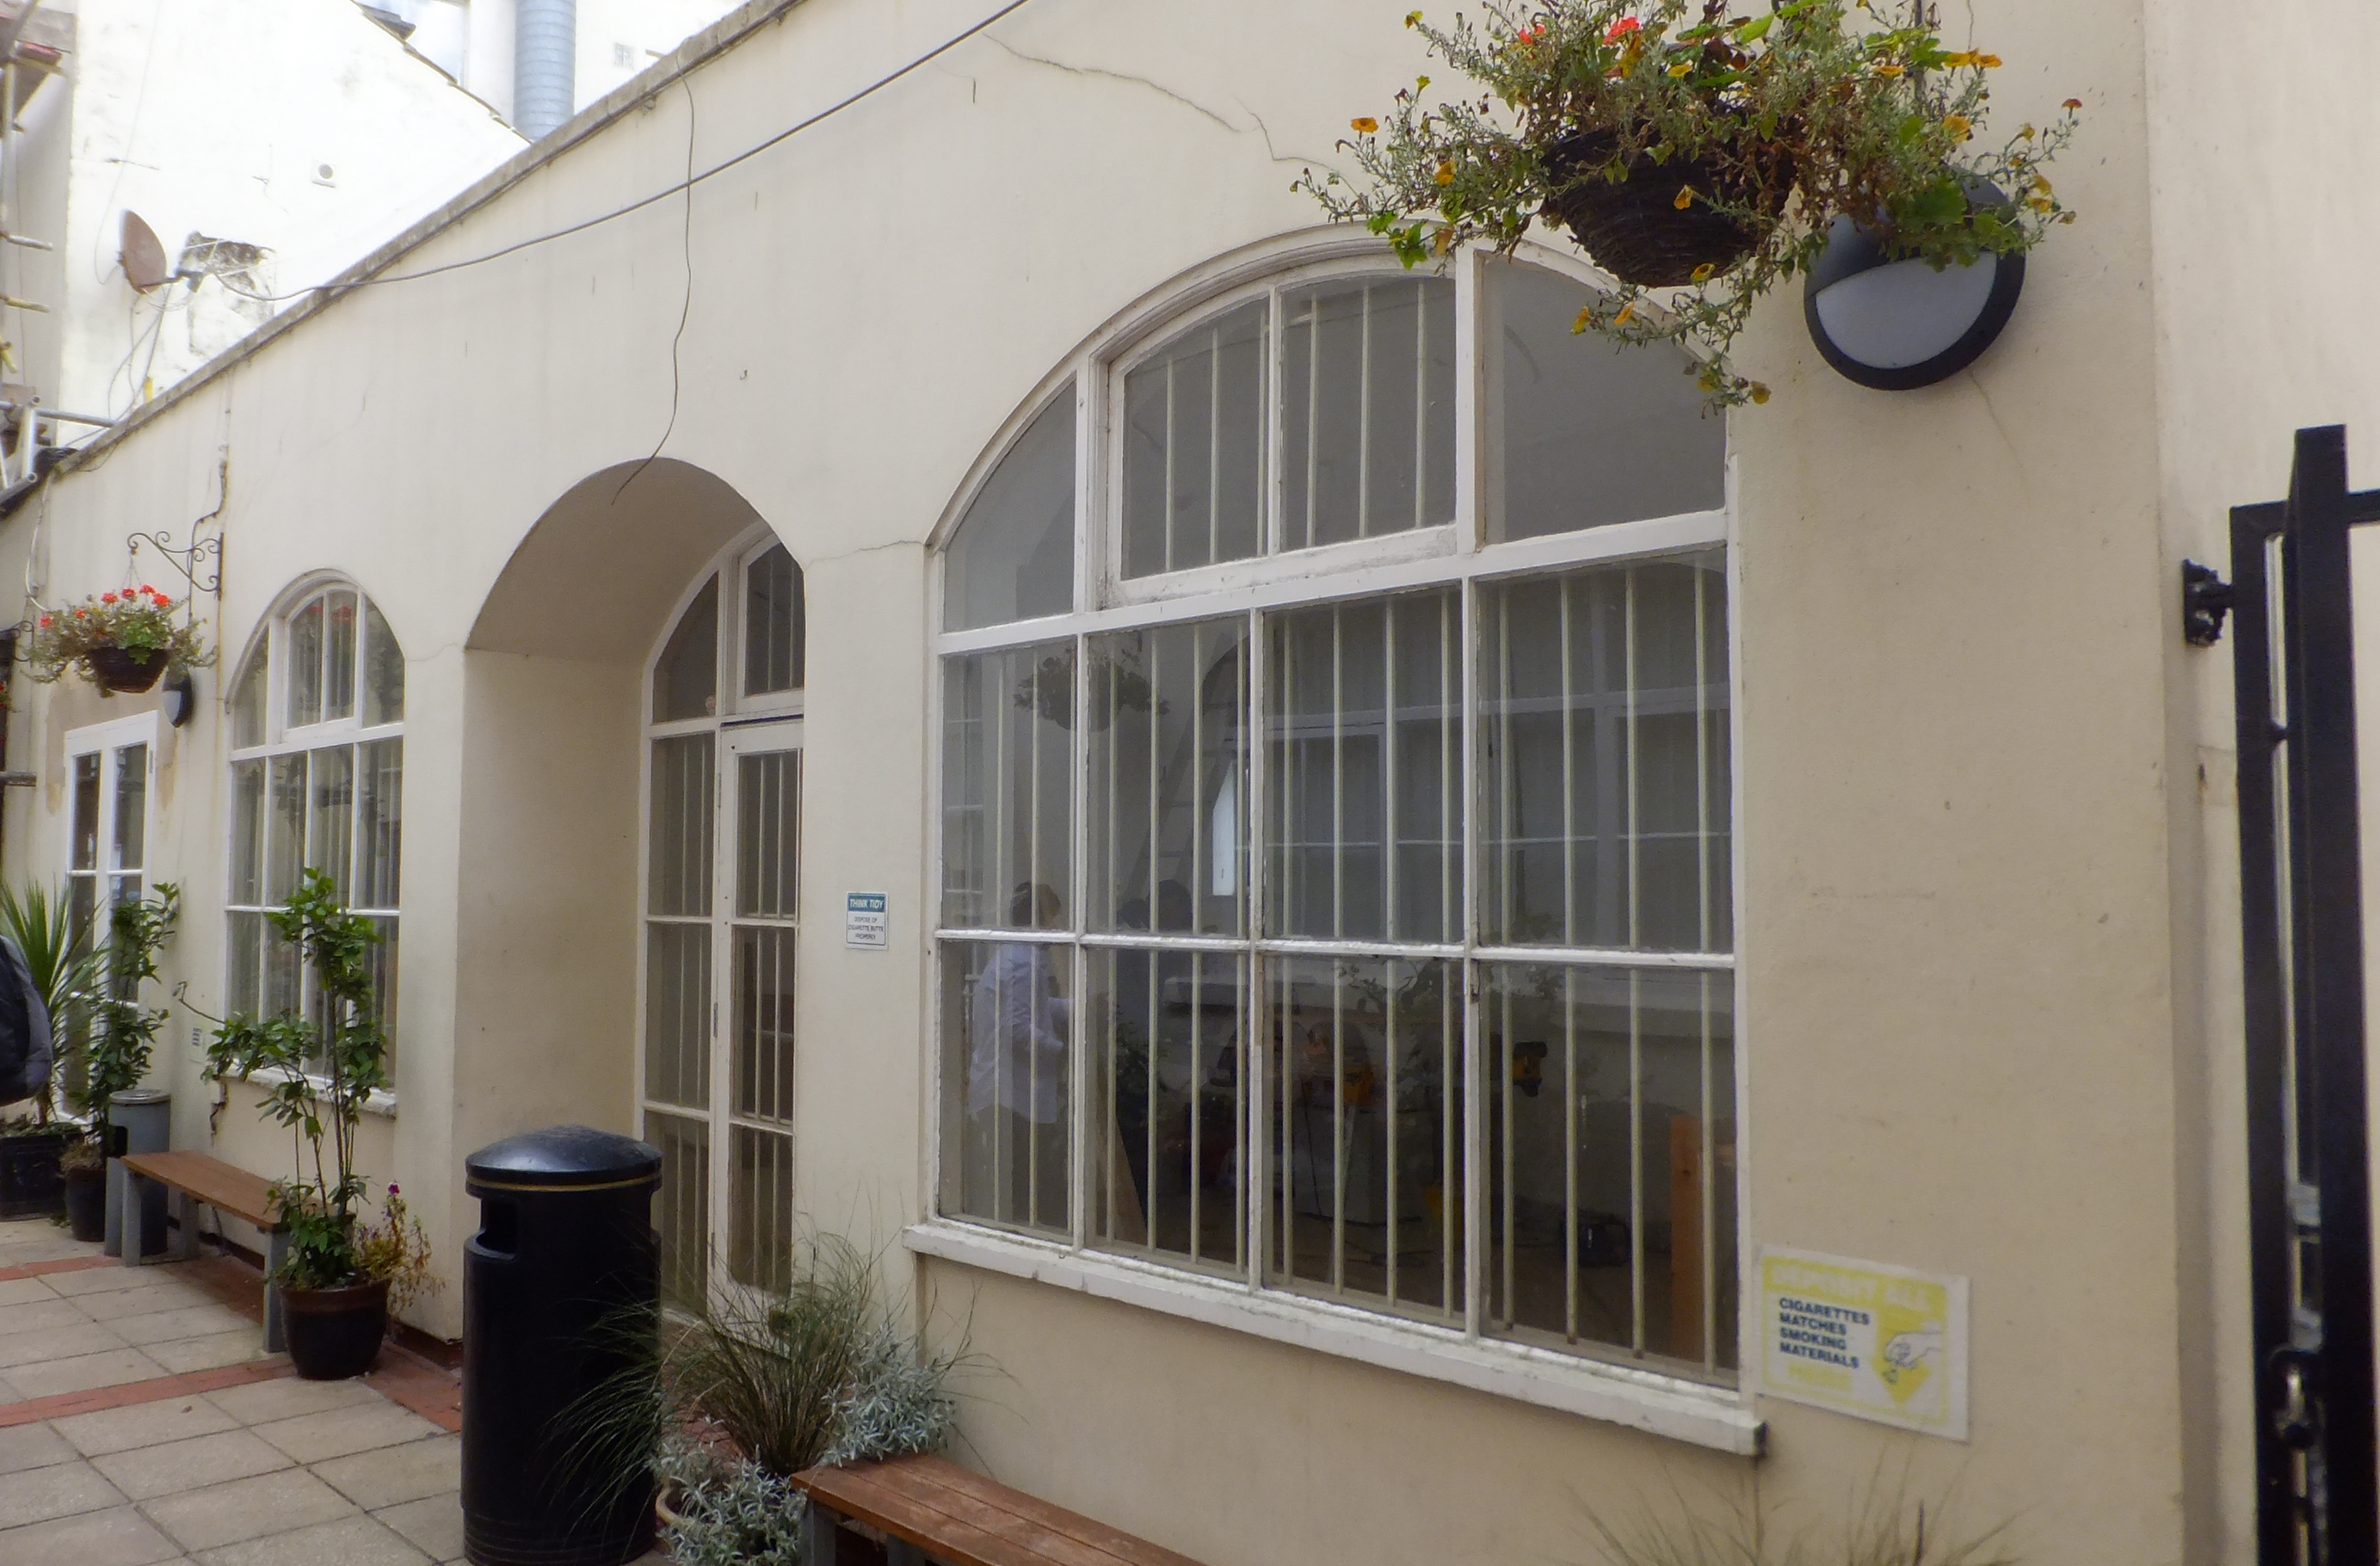 Deal Completed: Office in Hove